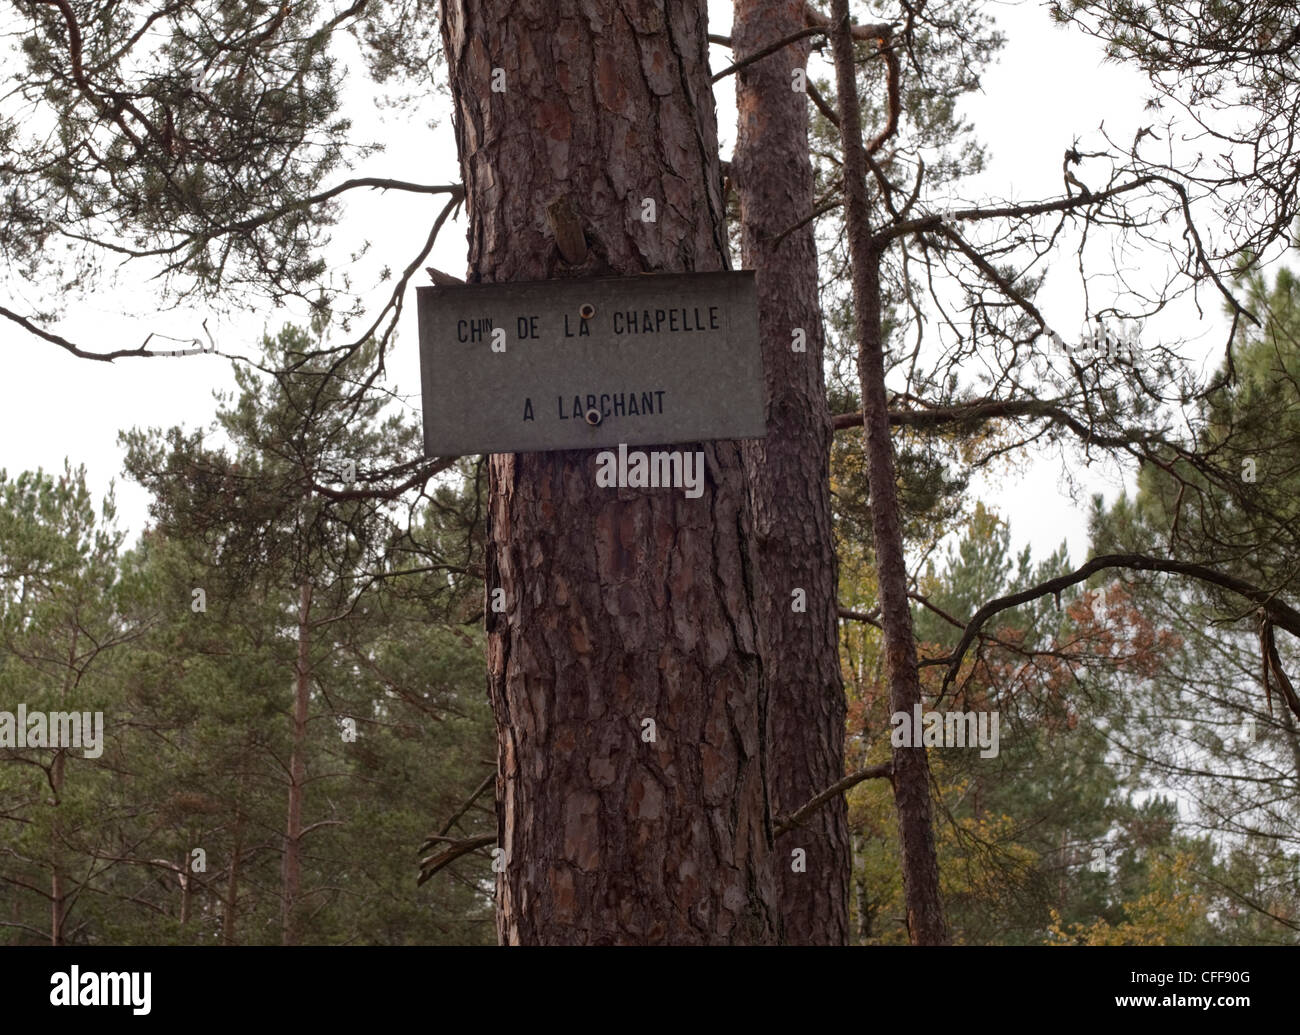 An old metal sign for de la chapelle a Larchant is nailed to a pine tree trunk in the forest at Fontainbleau - Stock Image